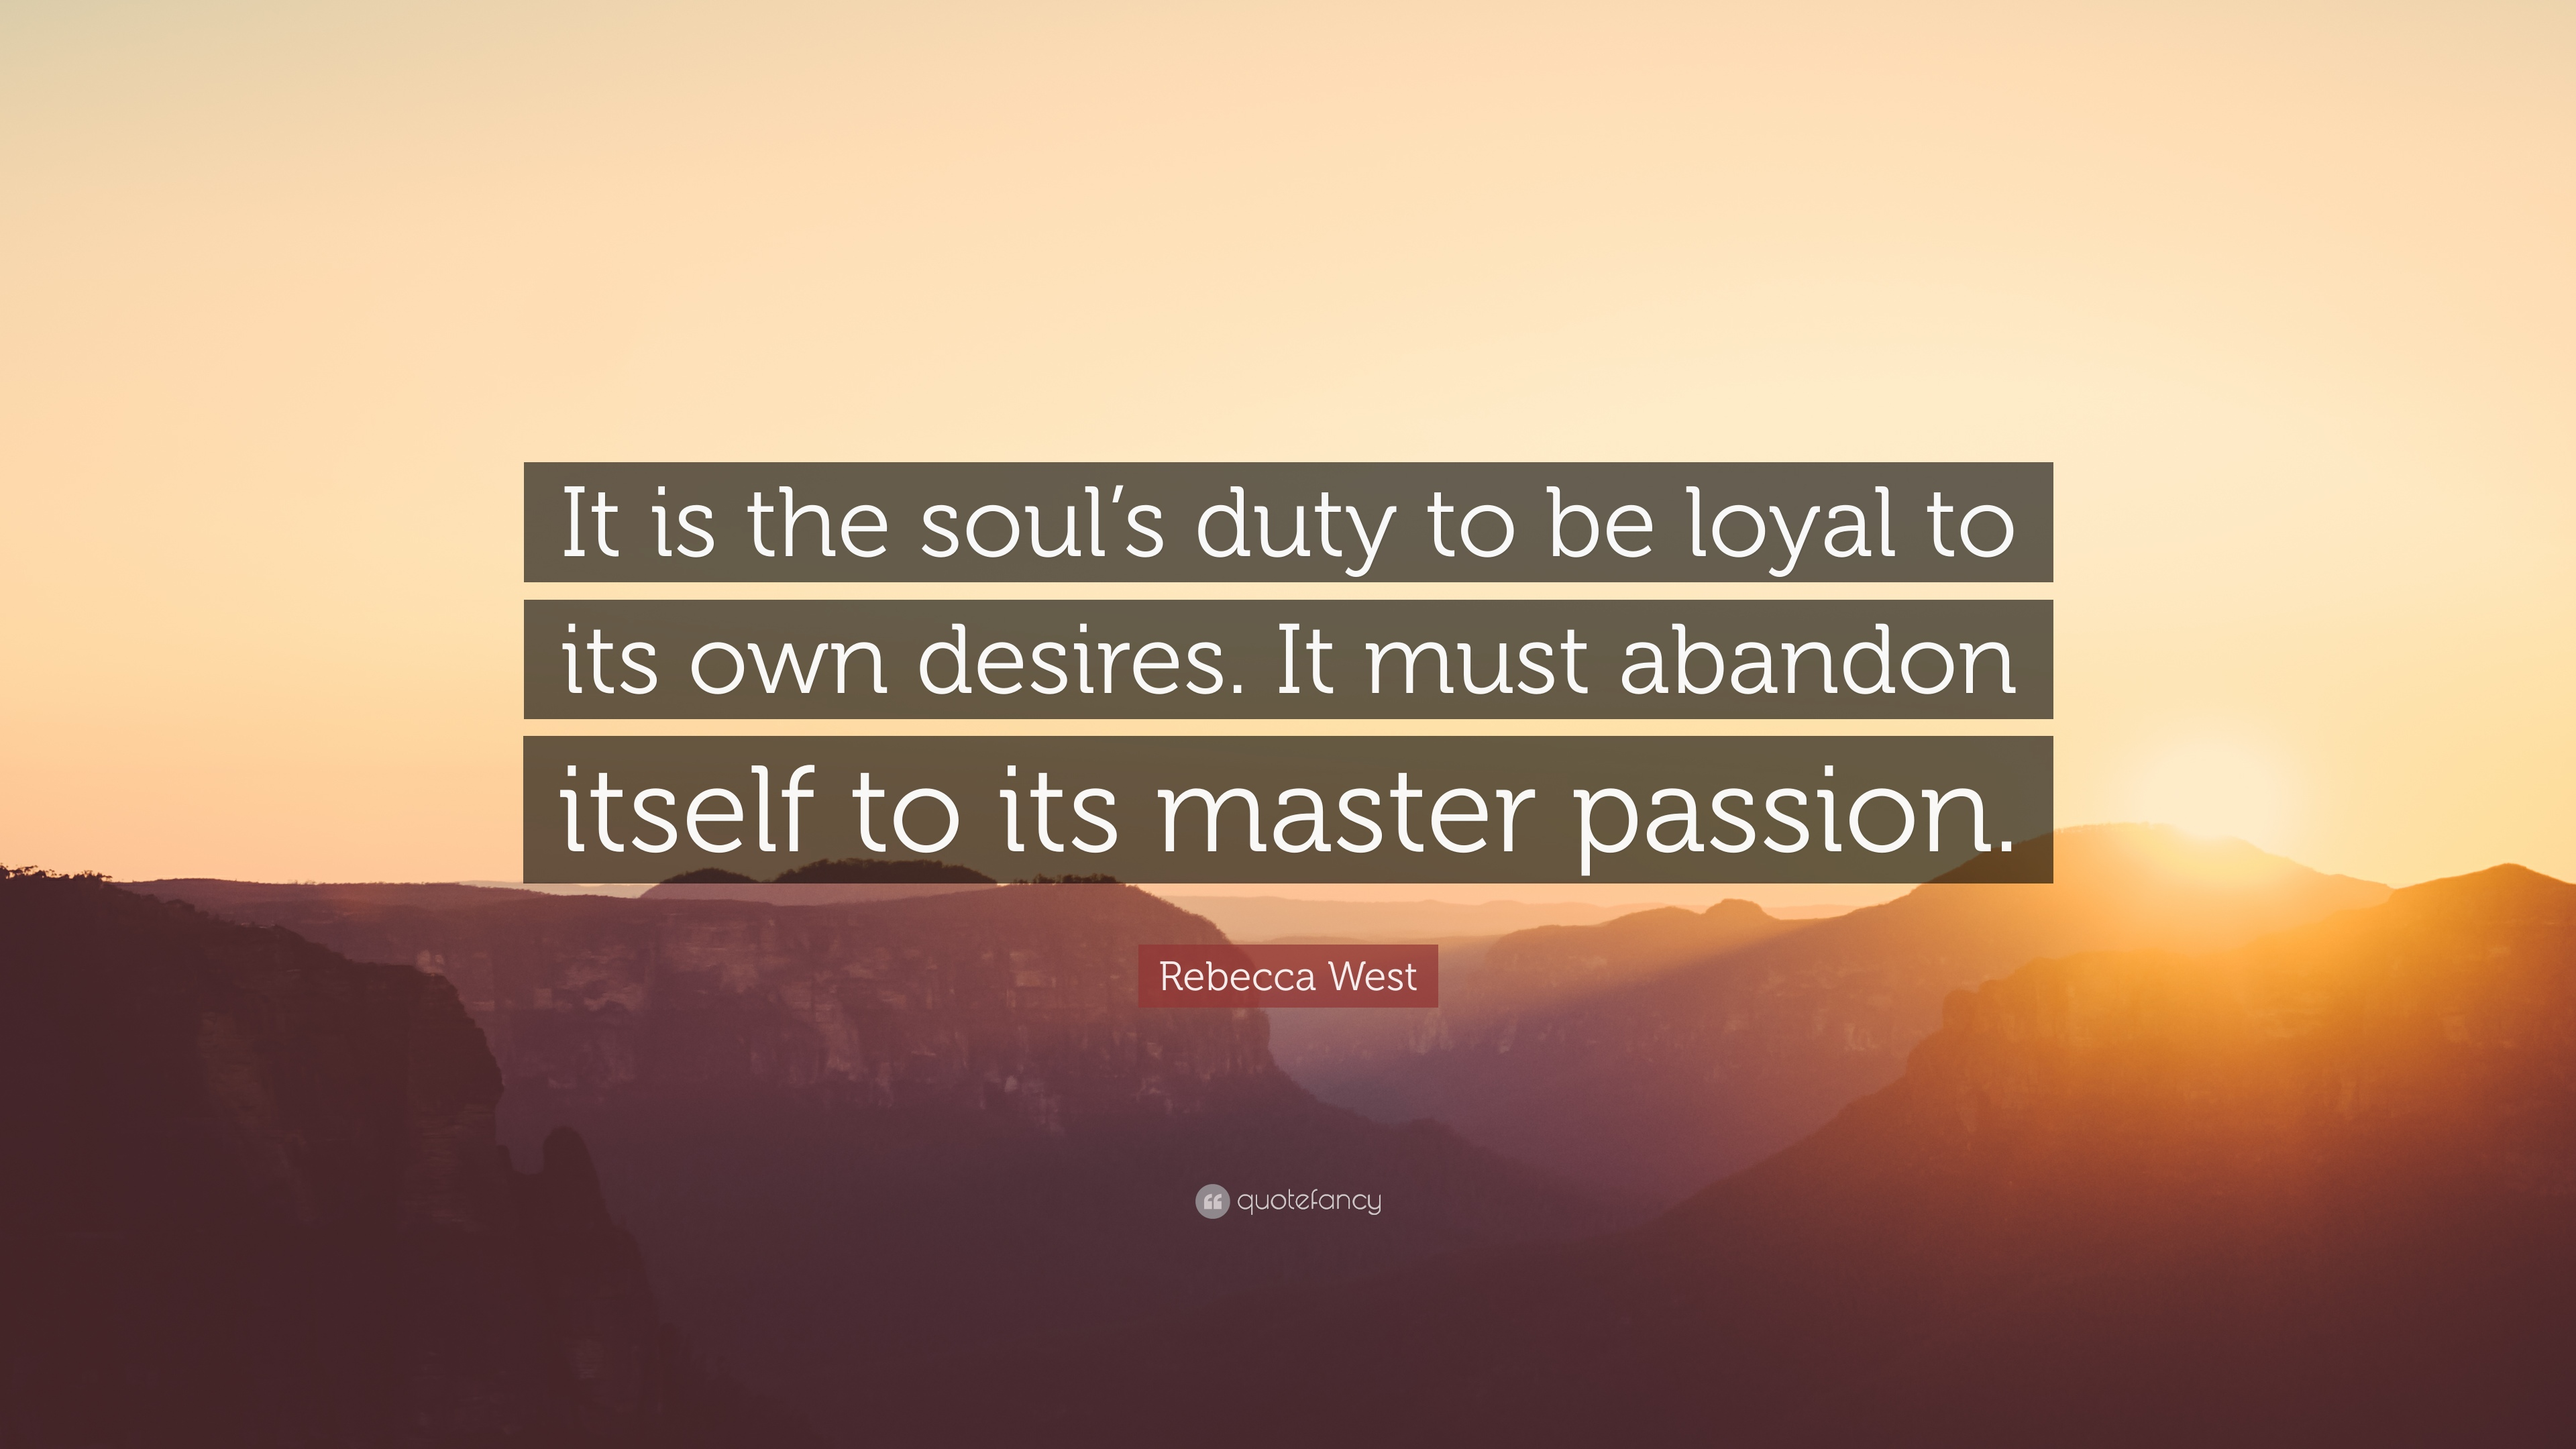 769366-Rebecca-West-Quote-It-is-the-soul-s-duty-to-be-loyal-to-its-own